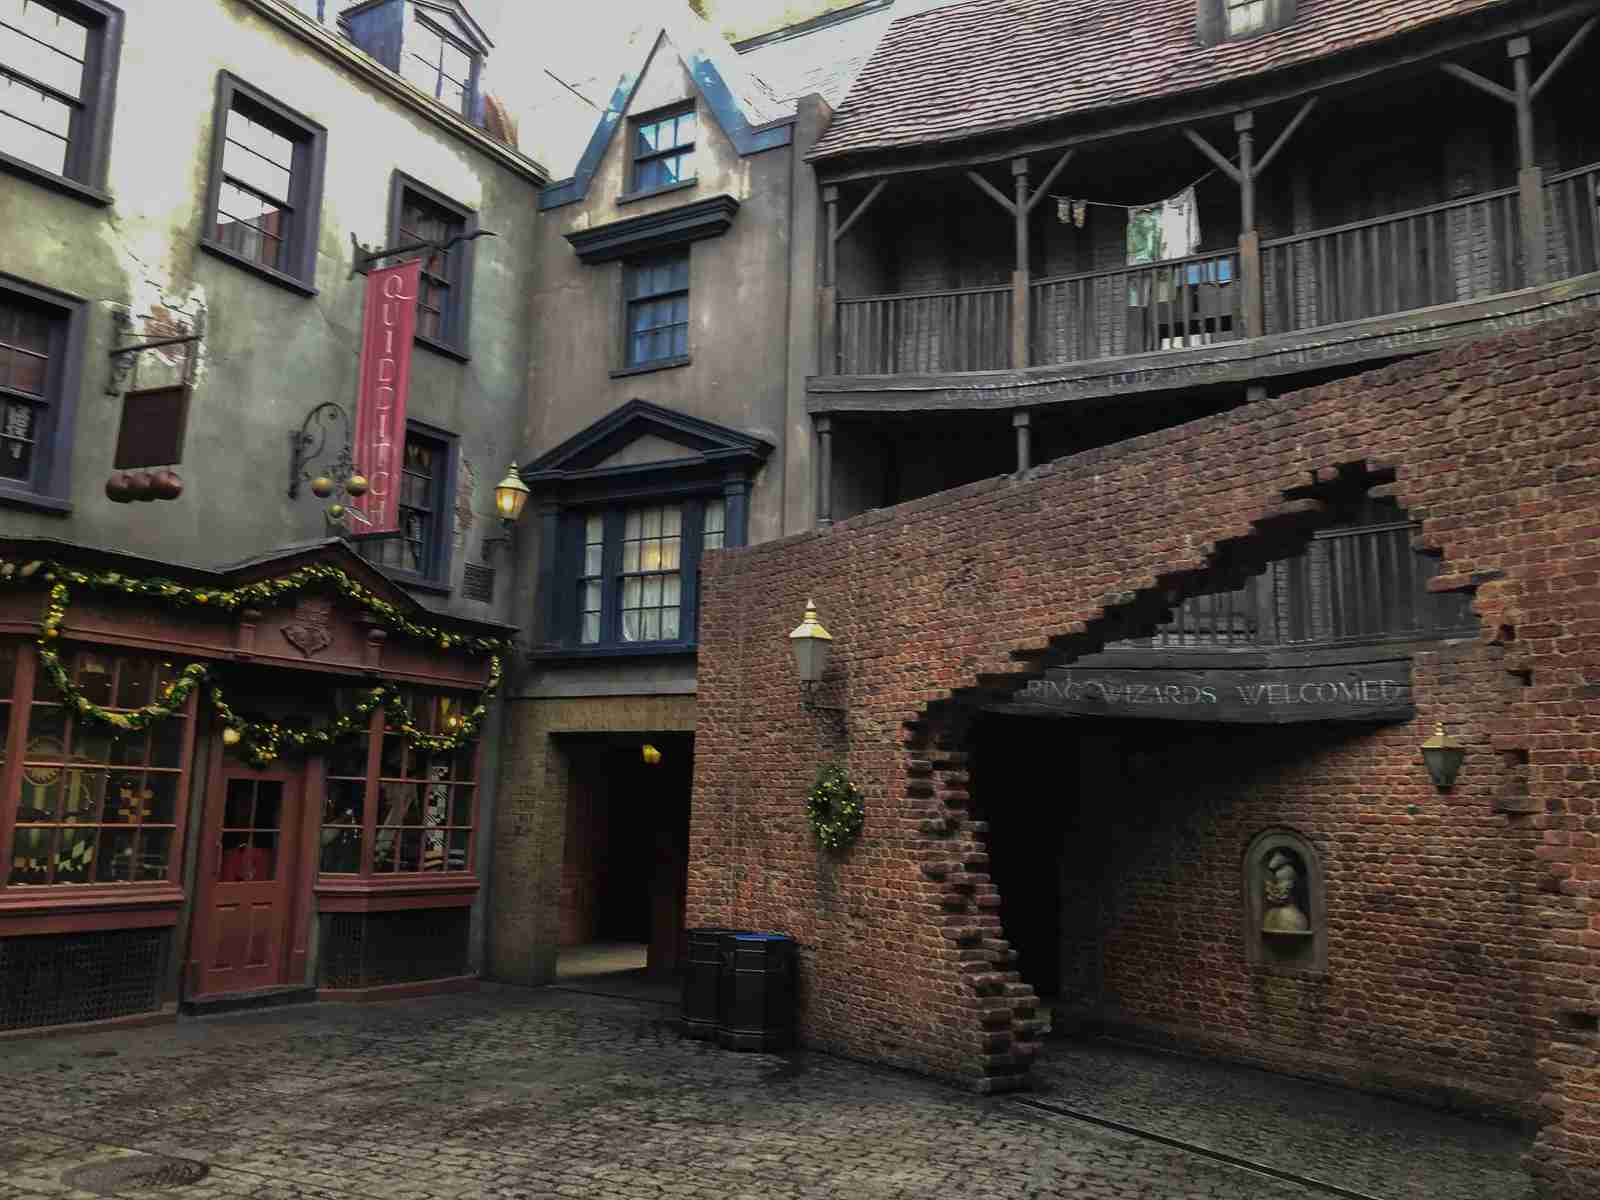 Walk through the opening in this brick wall to enter Diagon Alley. (Photo by Leonard Hospidor.)